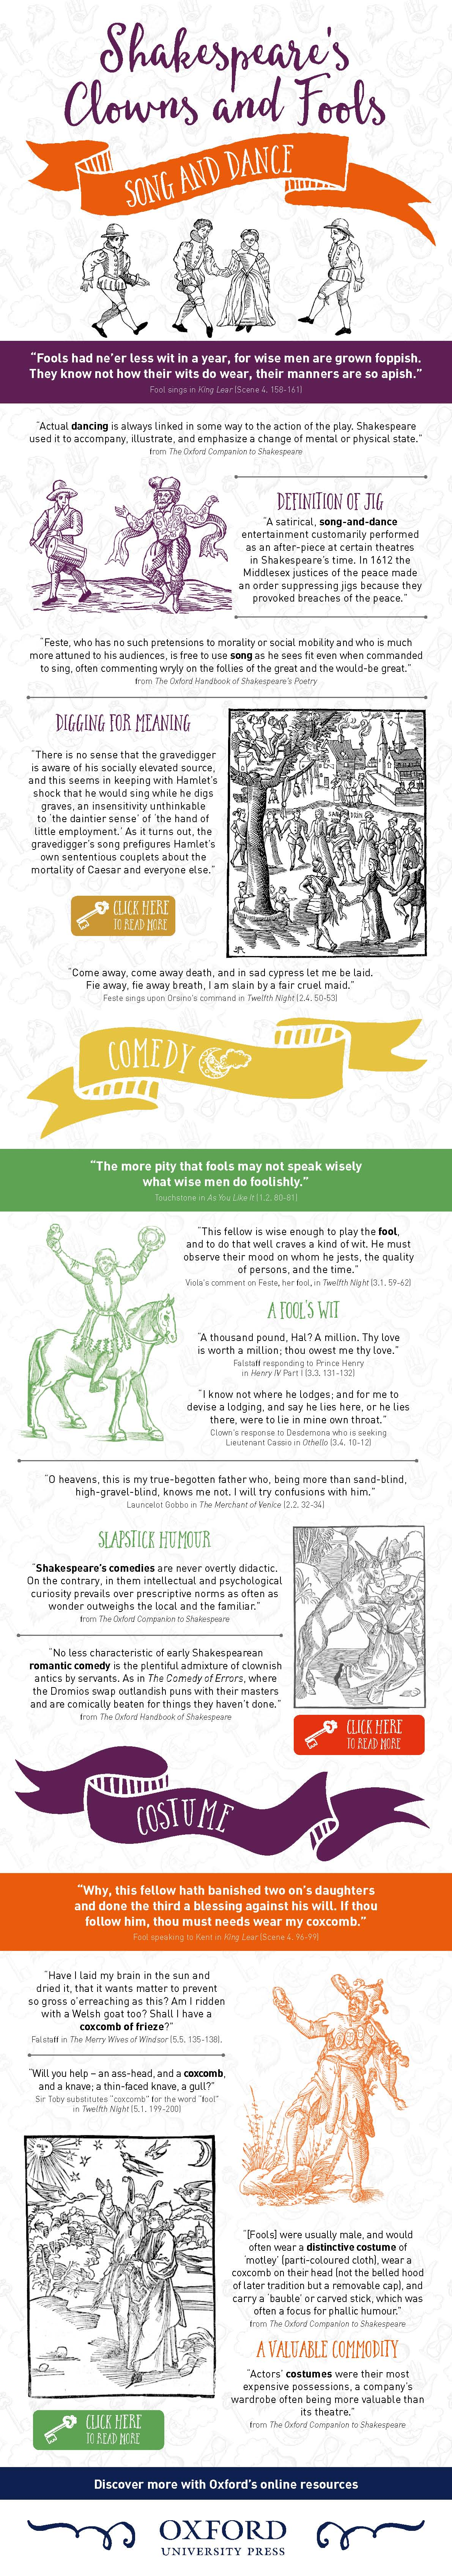 Shakespeares Clowns And Fools Infographic  Oupblog Clownsandfoolsinfographic